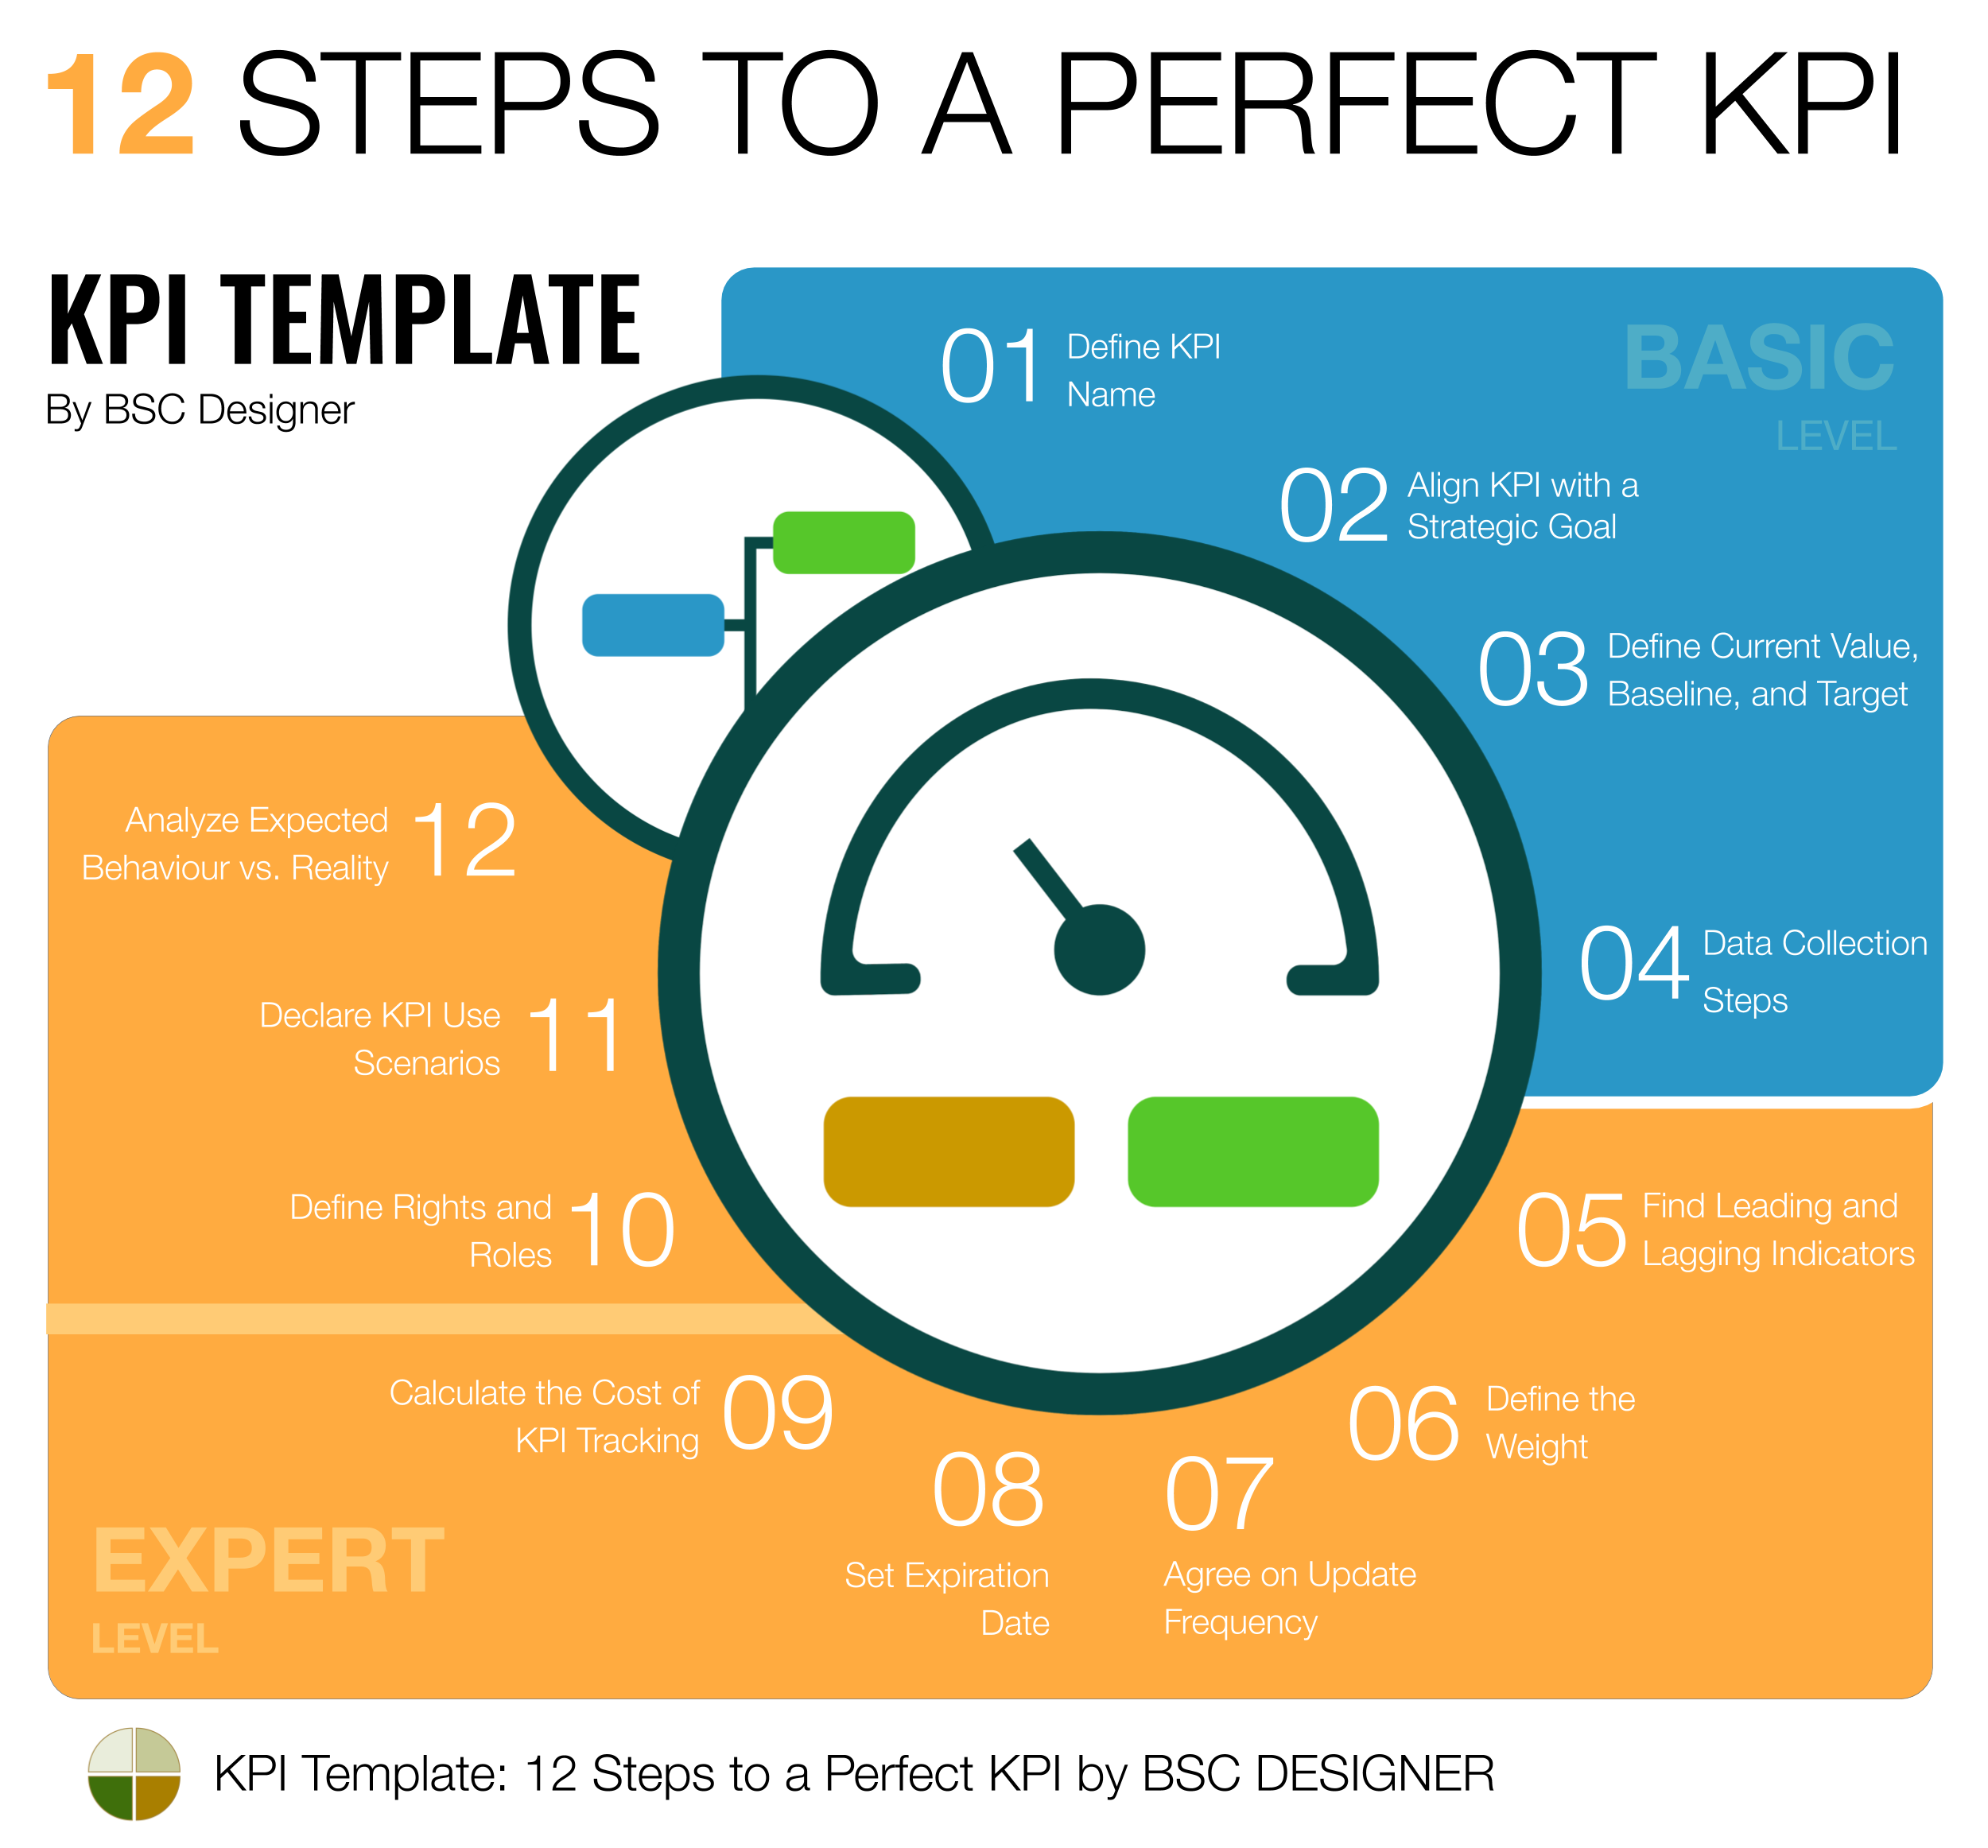 KPI Template: 12 Steps to a Perfect KPI